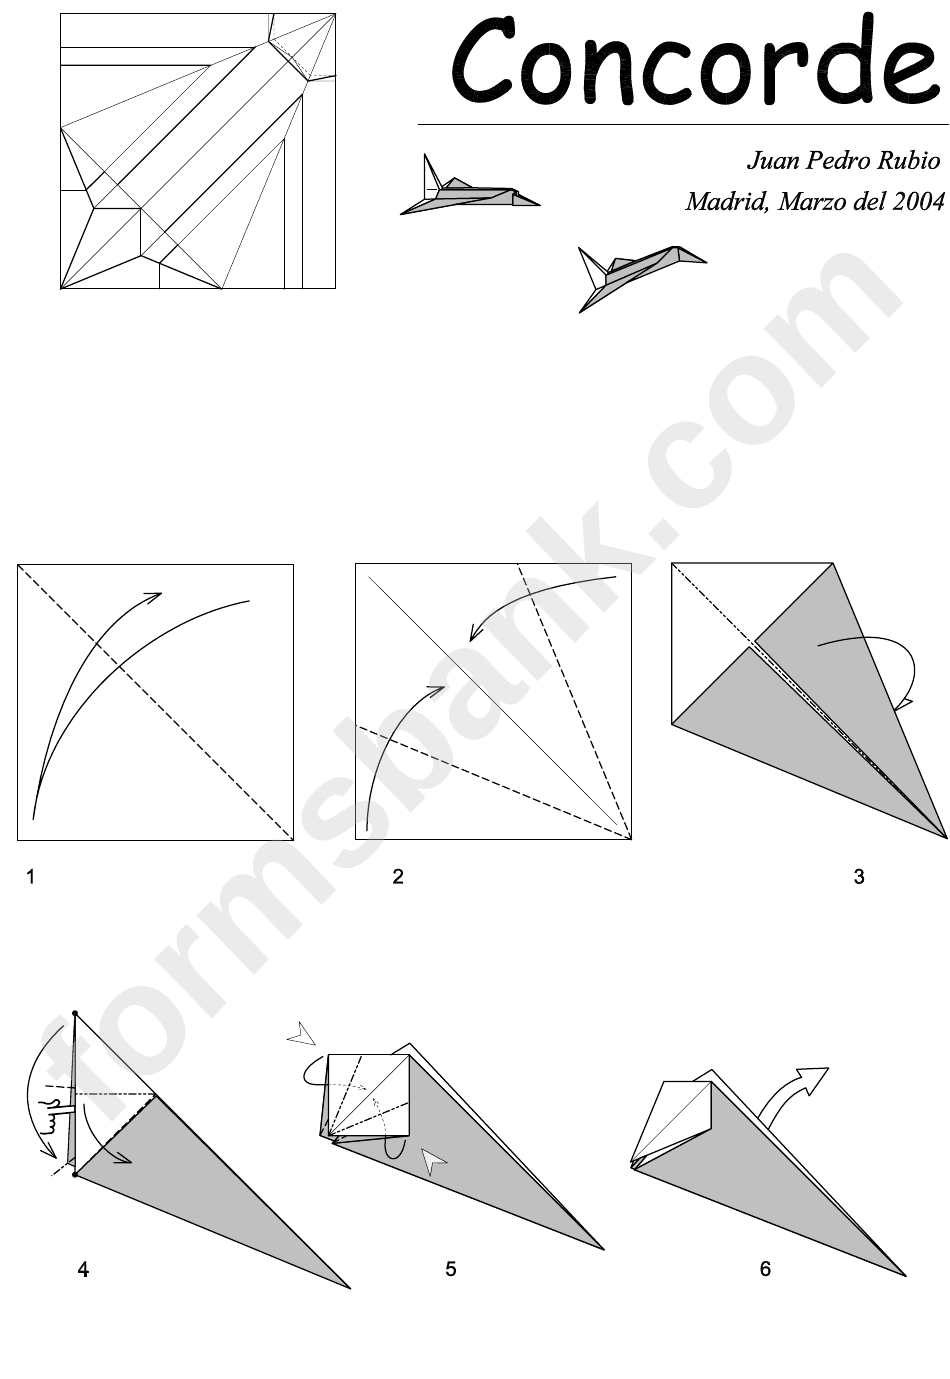 Concorde Paper Airplane Instructions printable pdf download